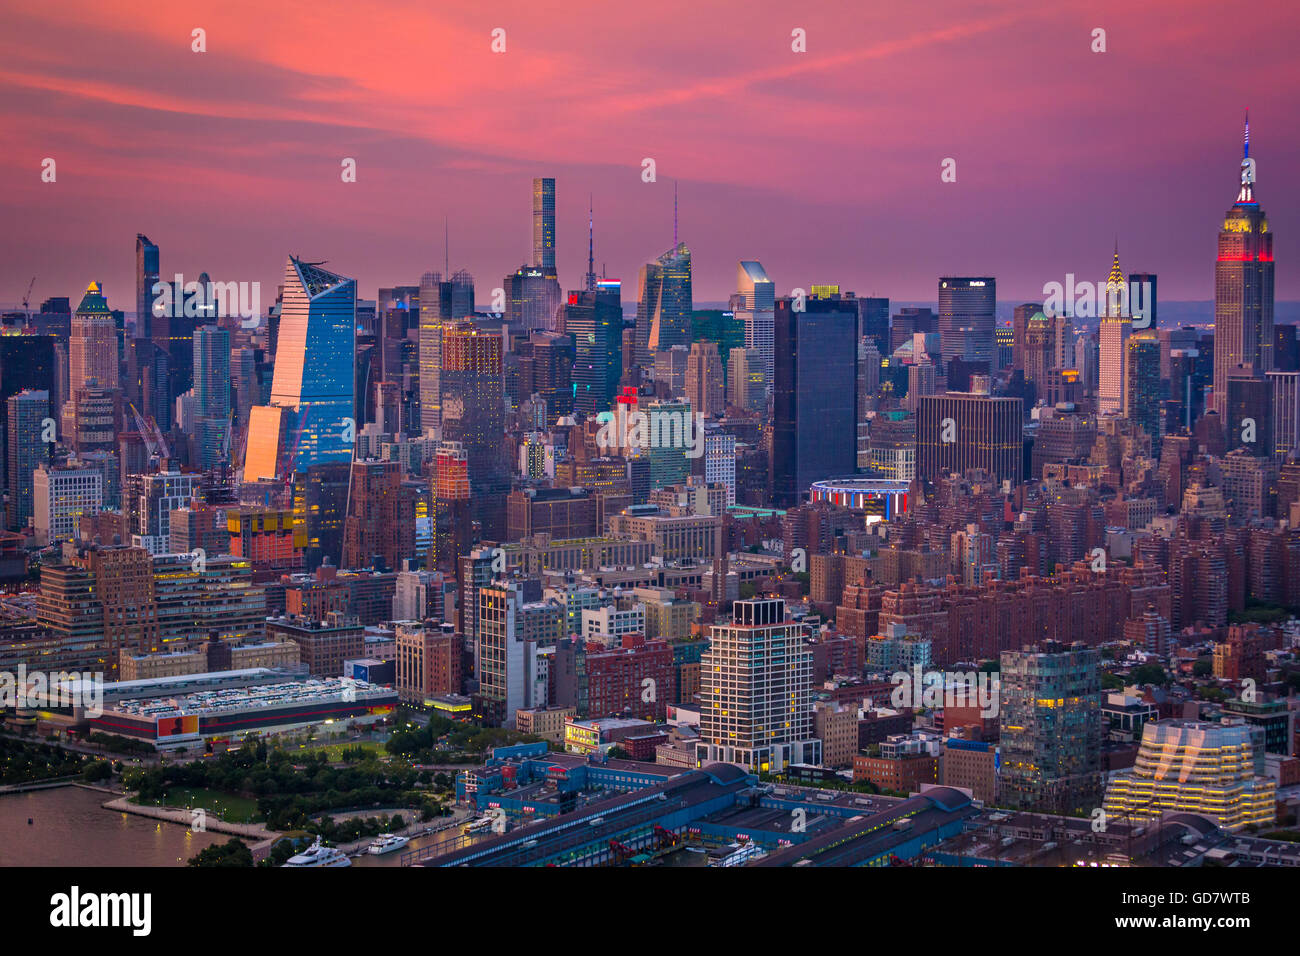 Aerial photograph (helicopter). Manhattan is the most densely populated of the five boroughs of New York City. - Stock Image